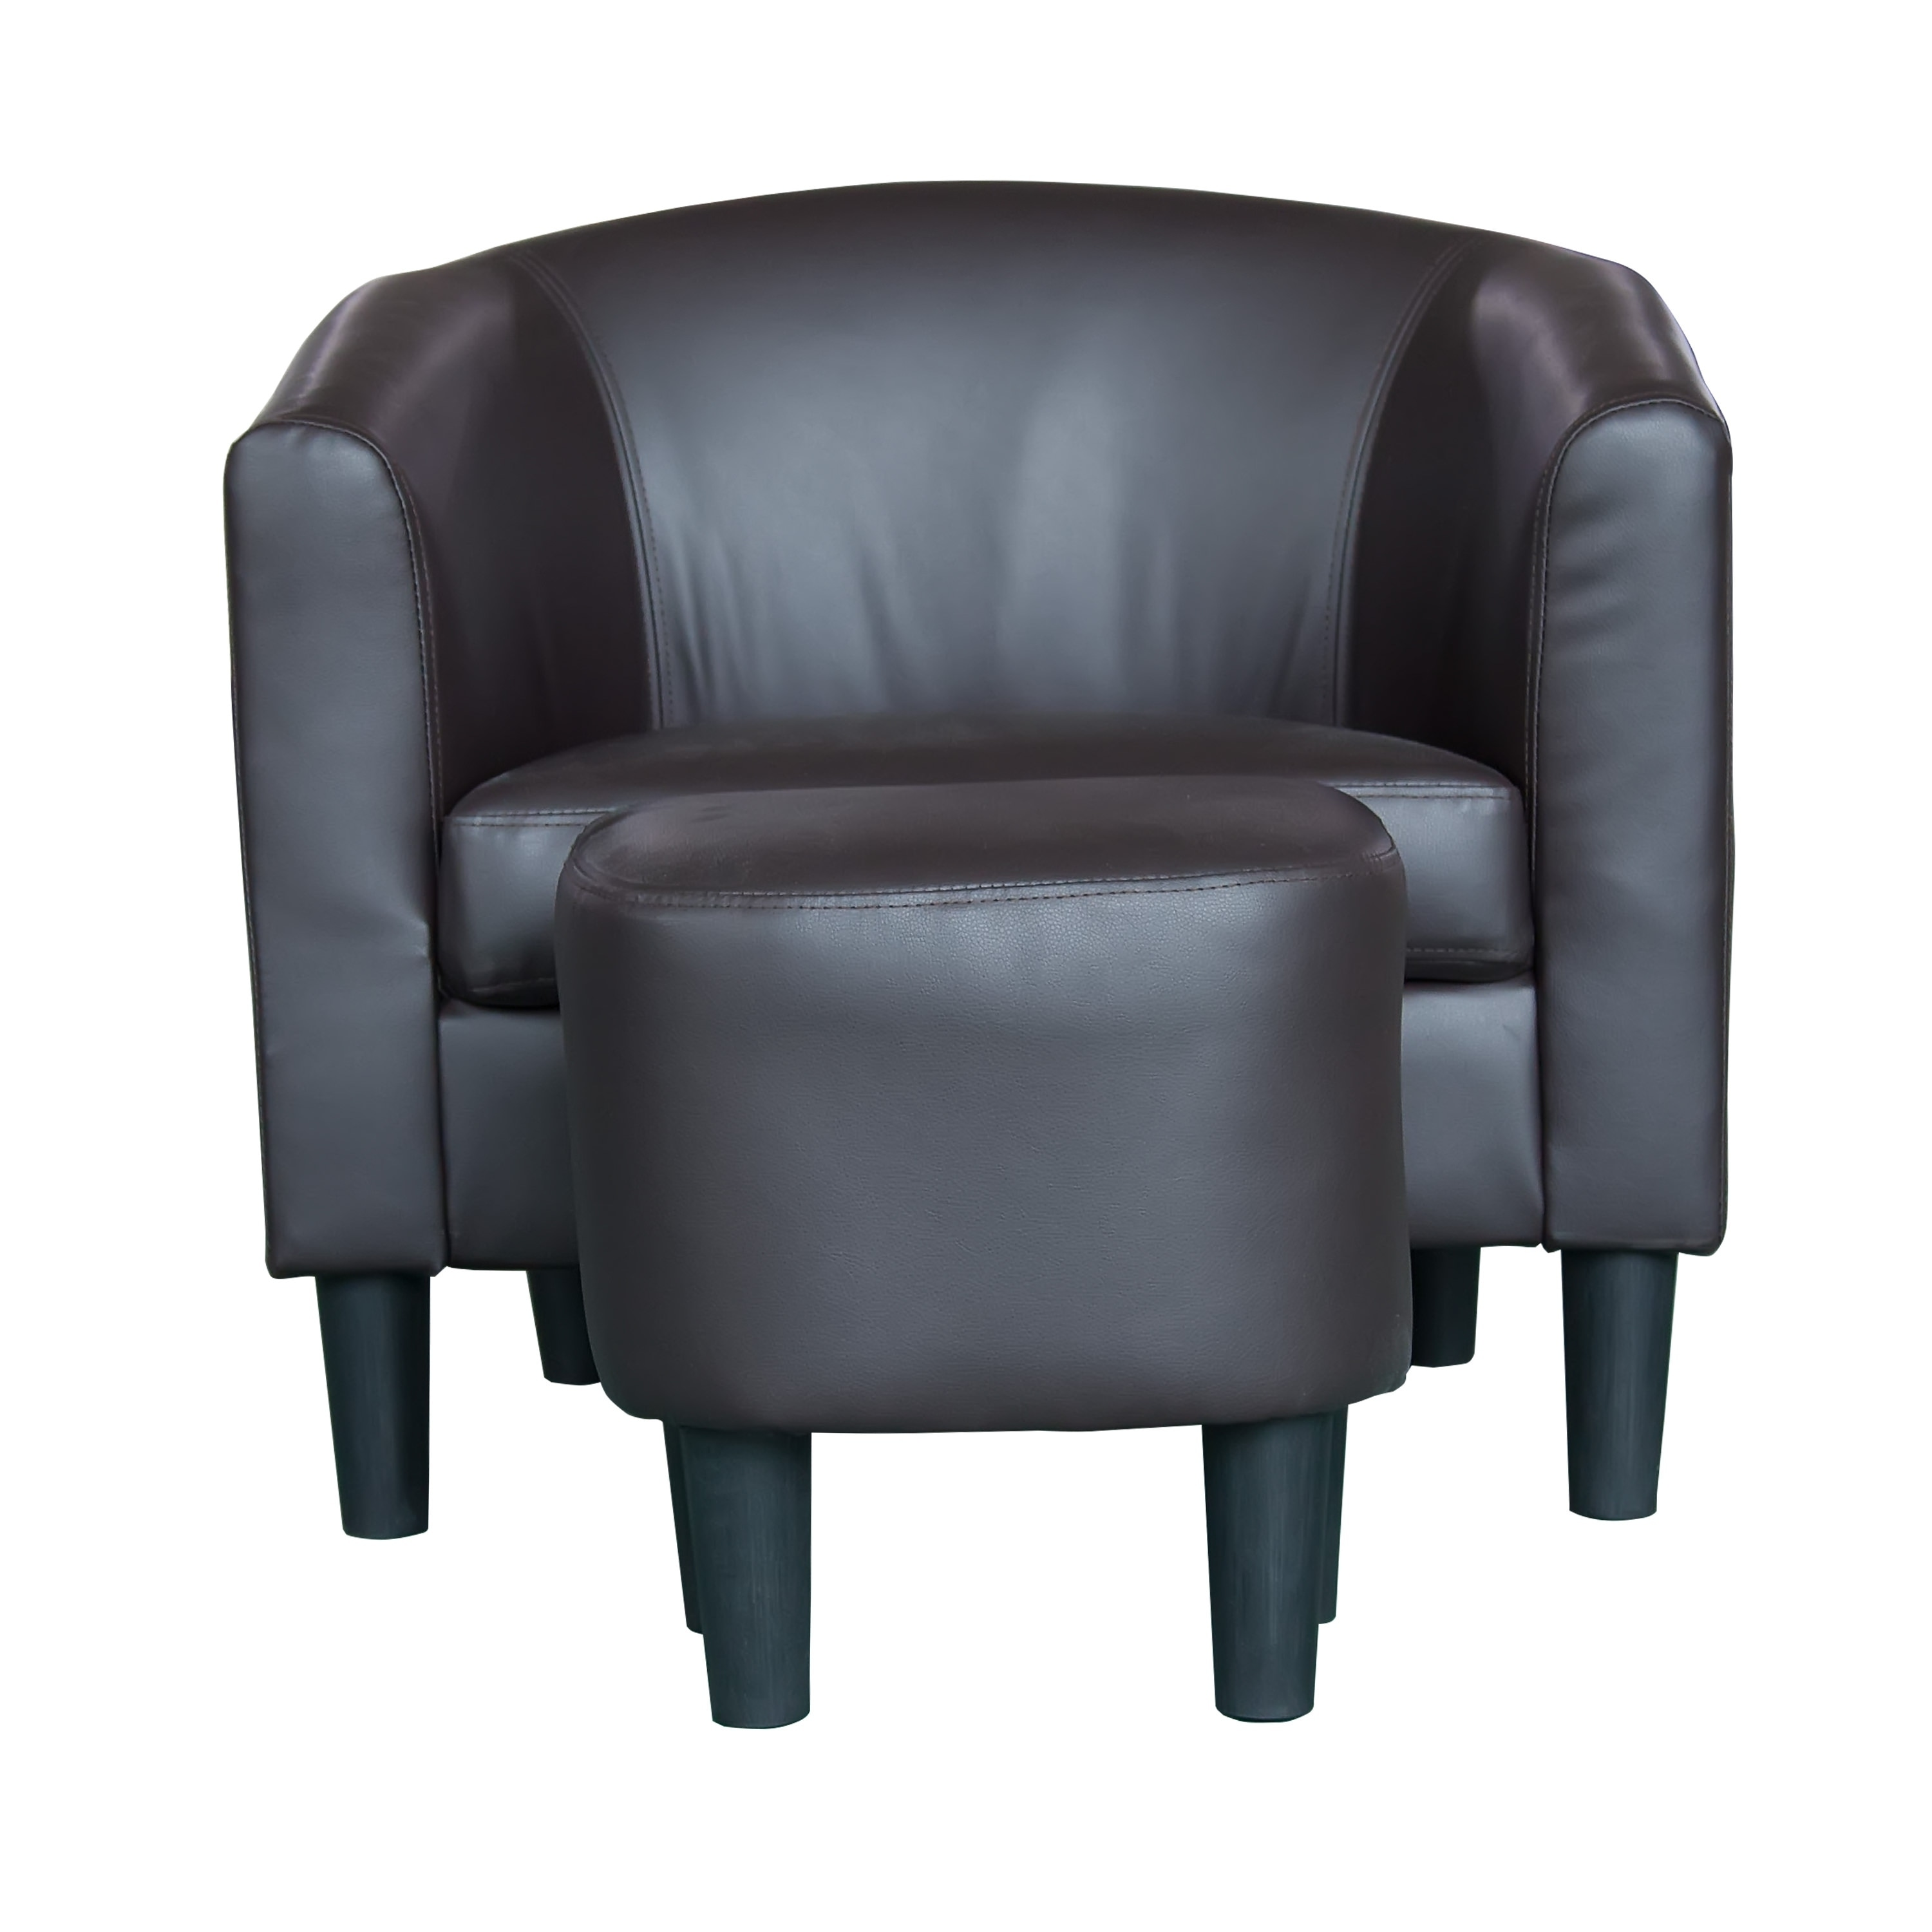 Magnificent Barrel Style Accent Chair With Ottoman Bralicious Painted Fabric Chair Ideas Braliciousco